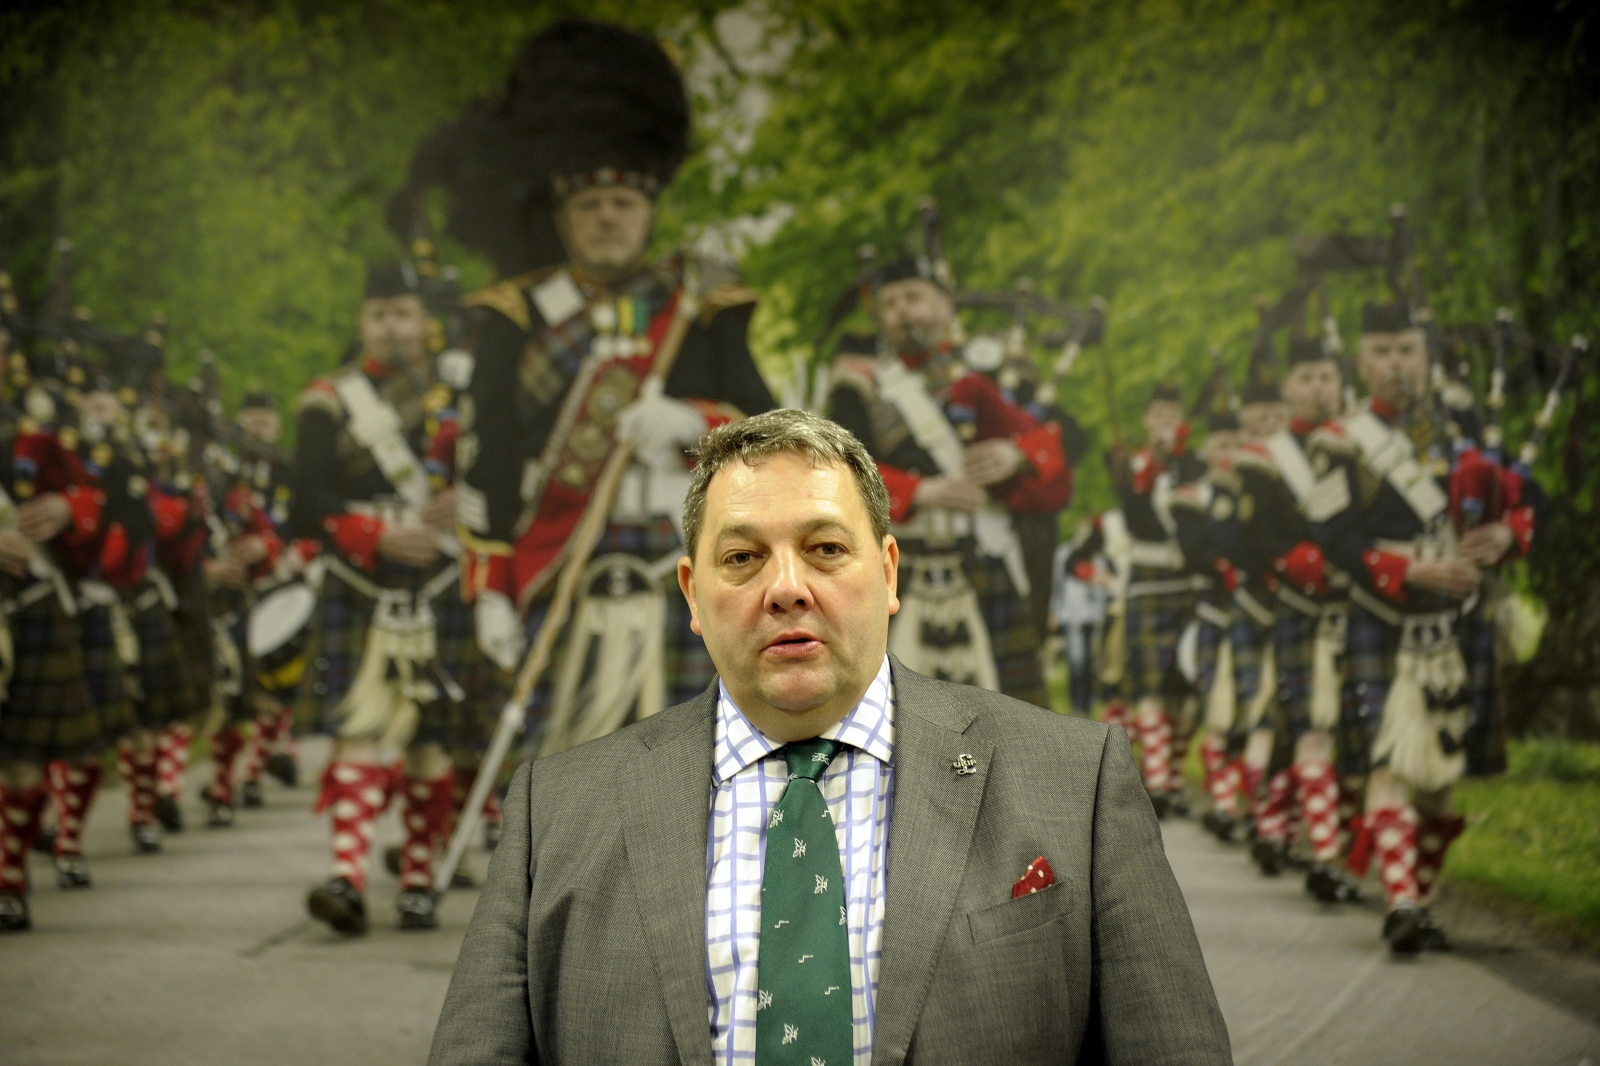 Ukip MEP David Coburn has blasted gays who marry as 'queens desperate for bridal frocks'